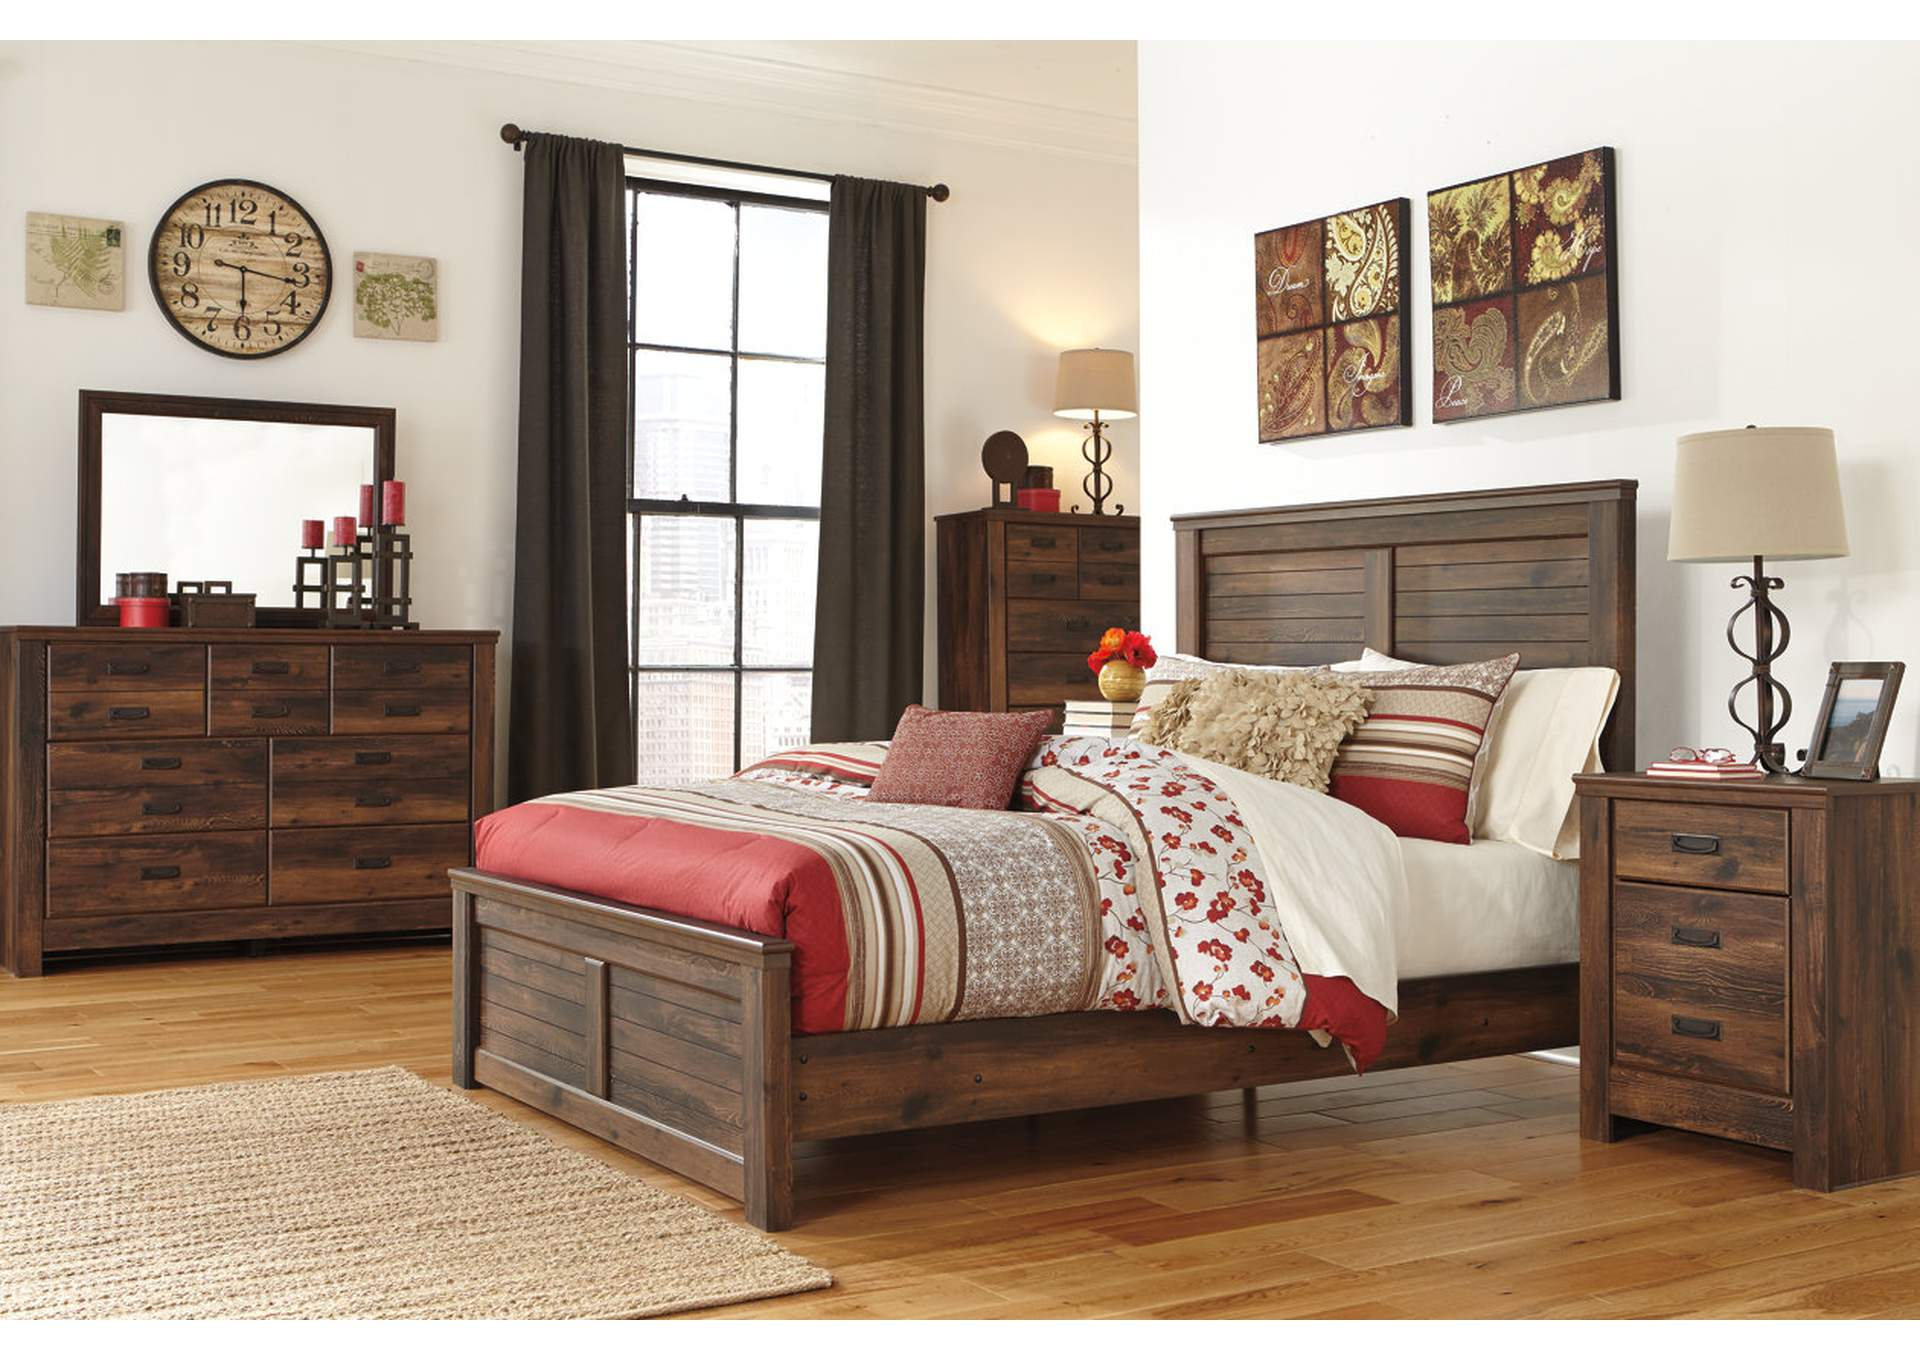 Quinden Queen Panel Bed w/Dresser, Mirror & Drawer Chest,Signature Design By Ashley